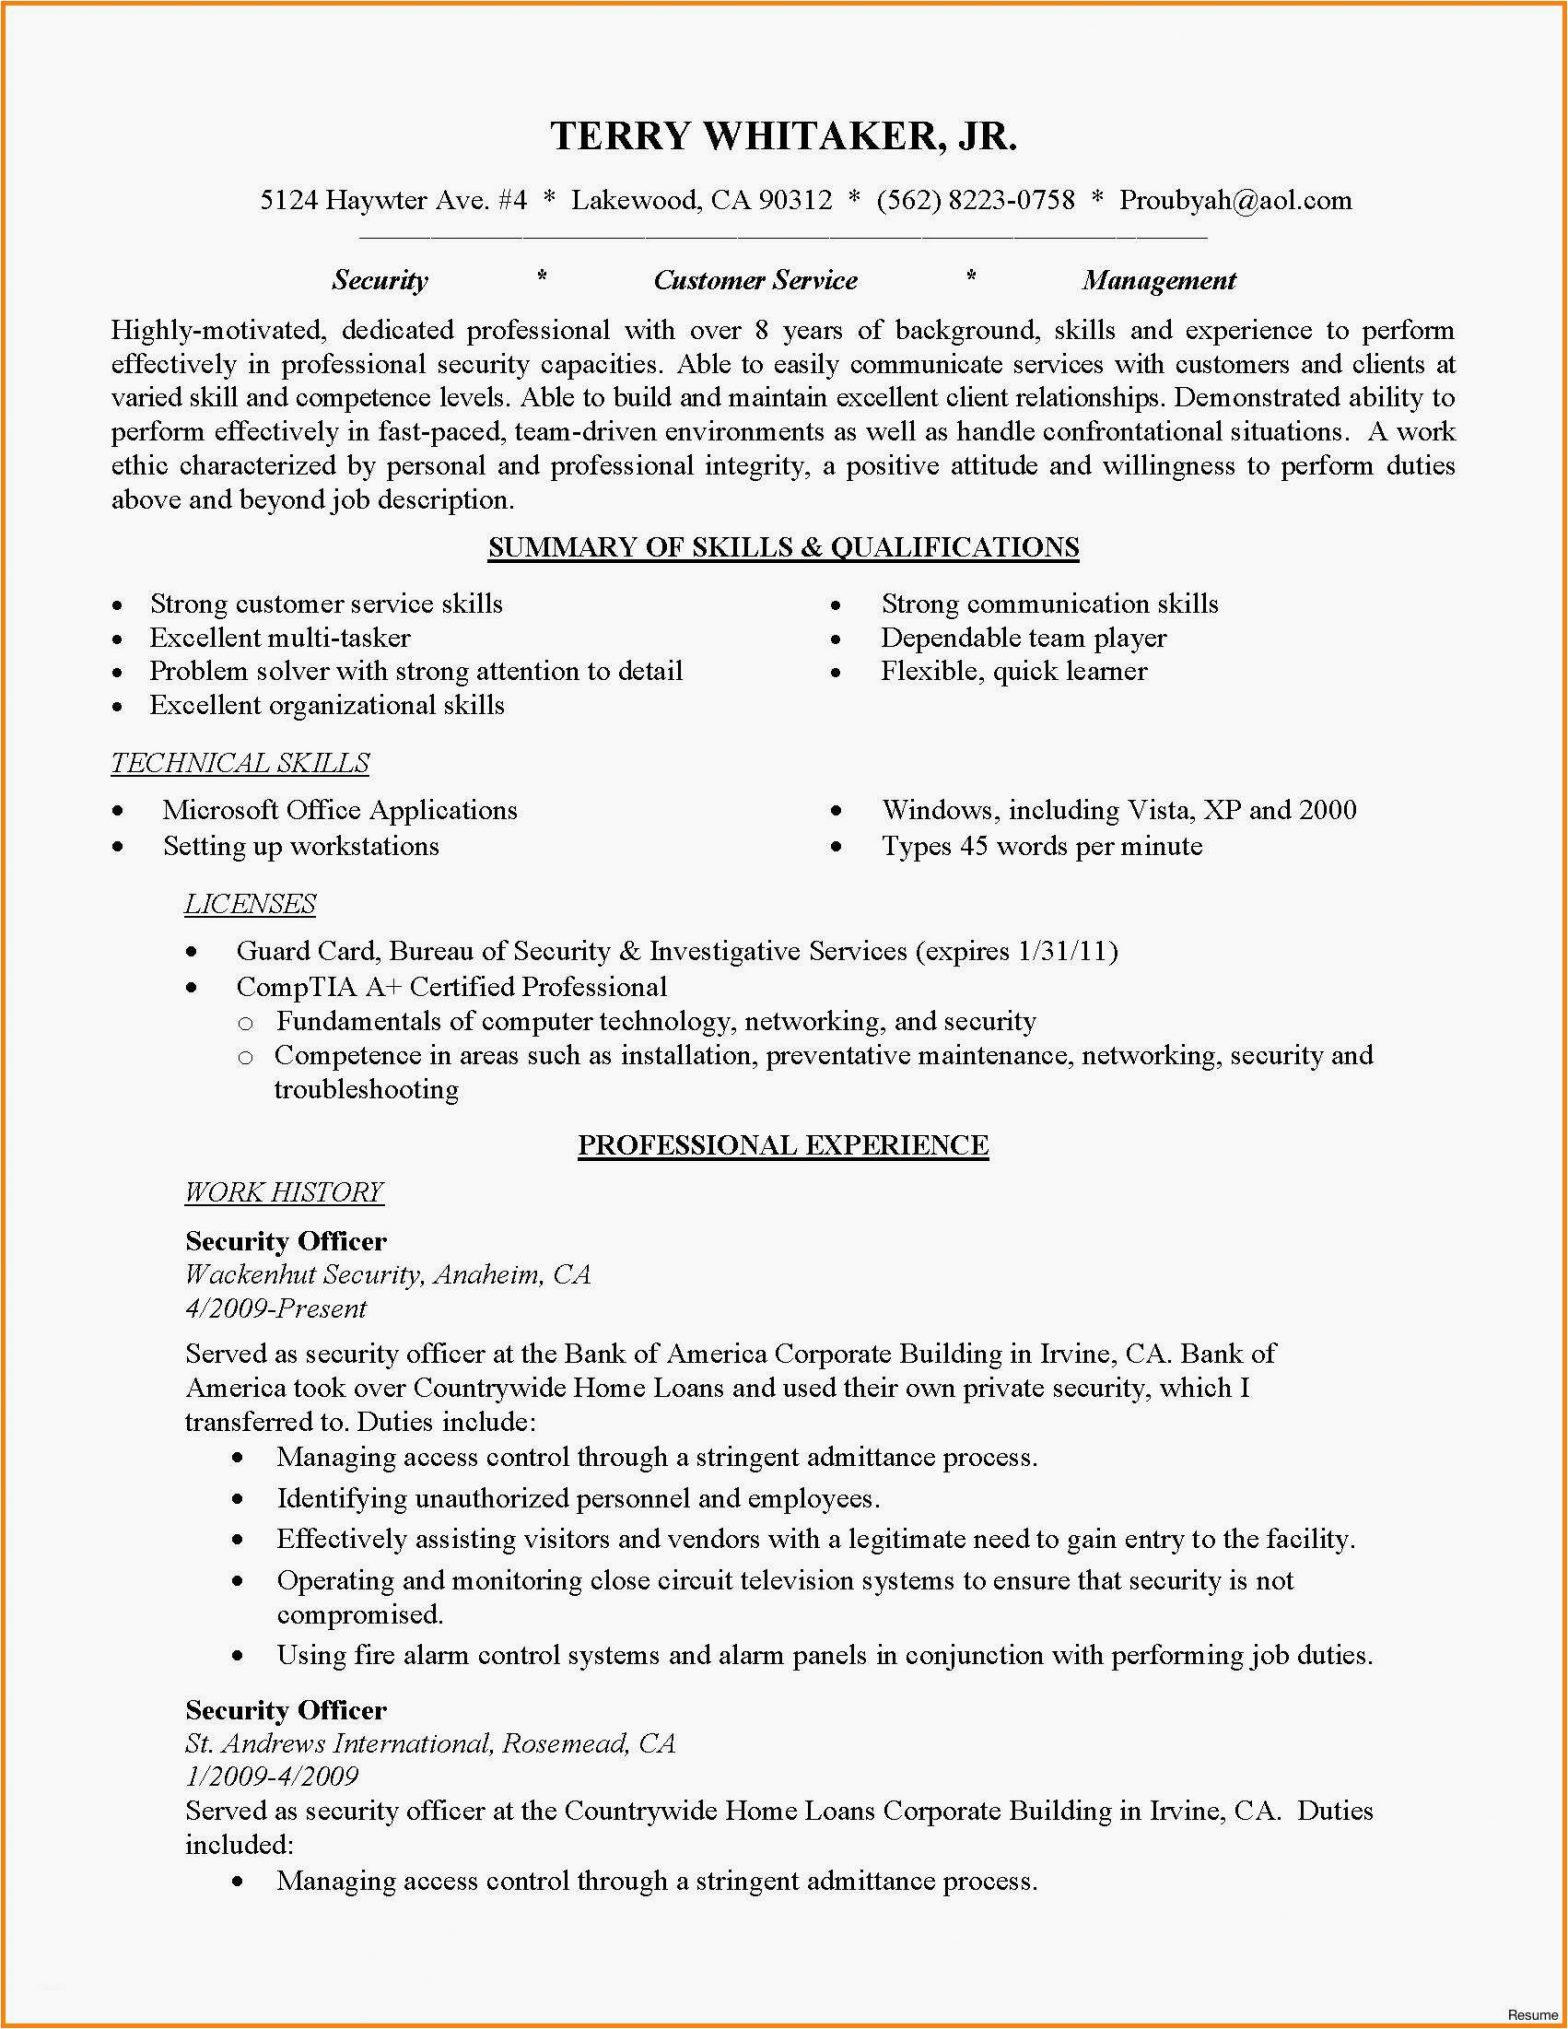 Sample Resume for Entry Level Cyber Security Entry Level Cyber Security Resume